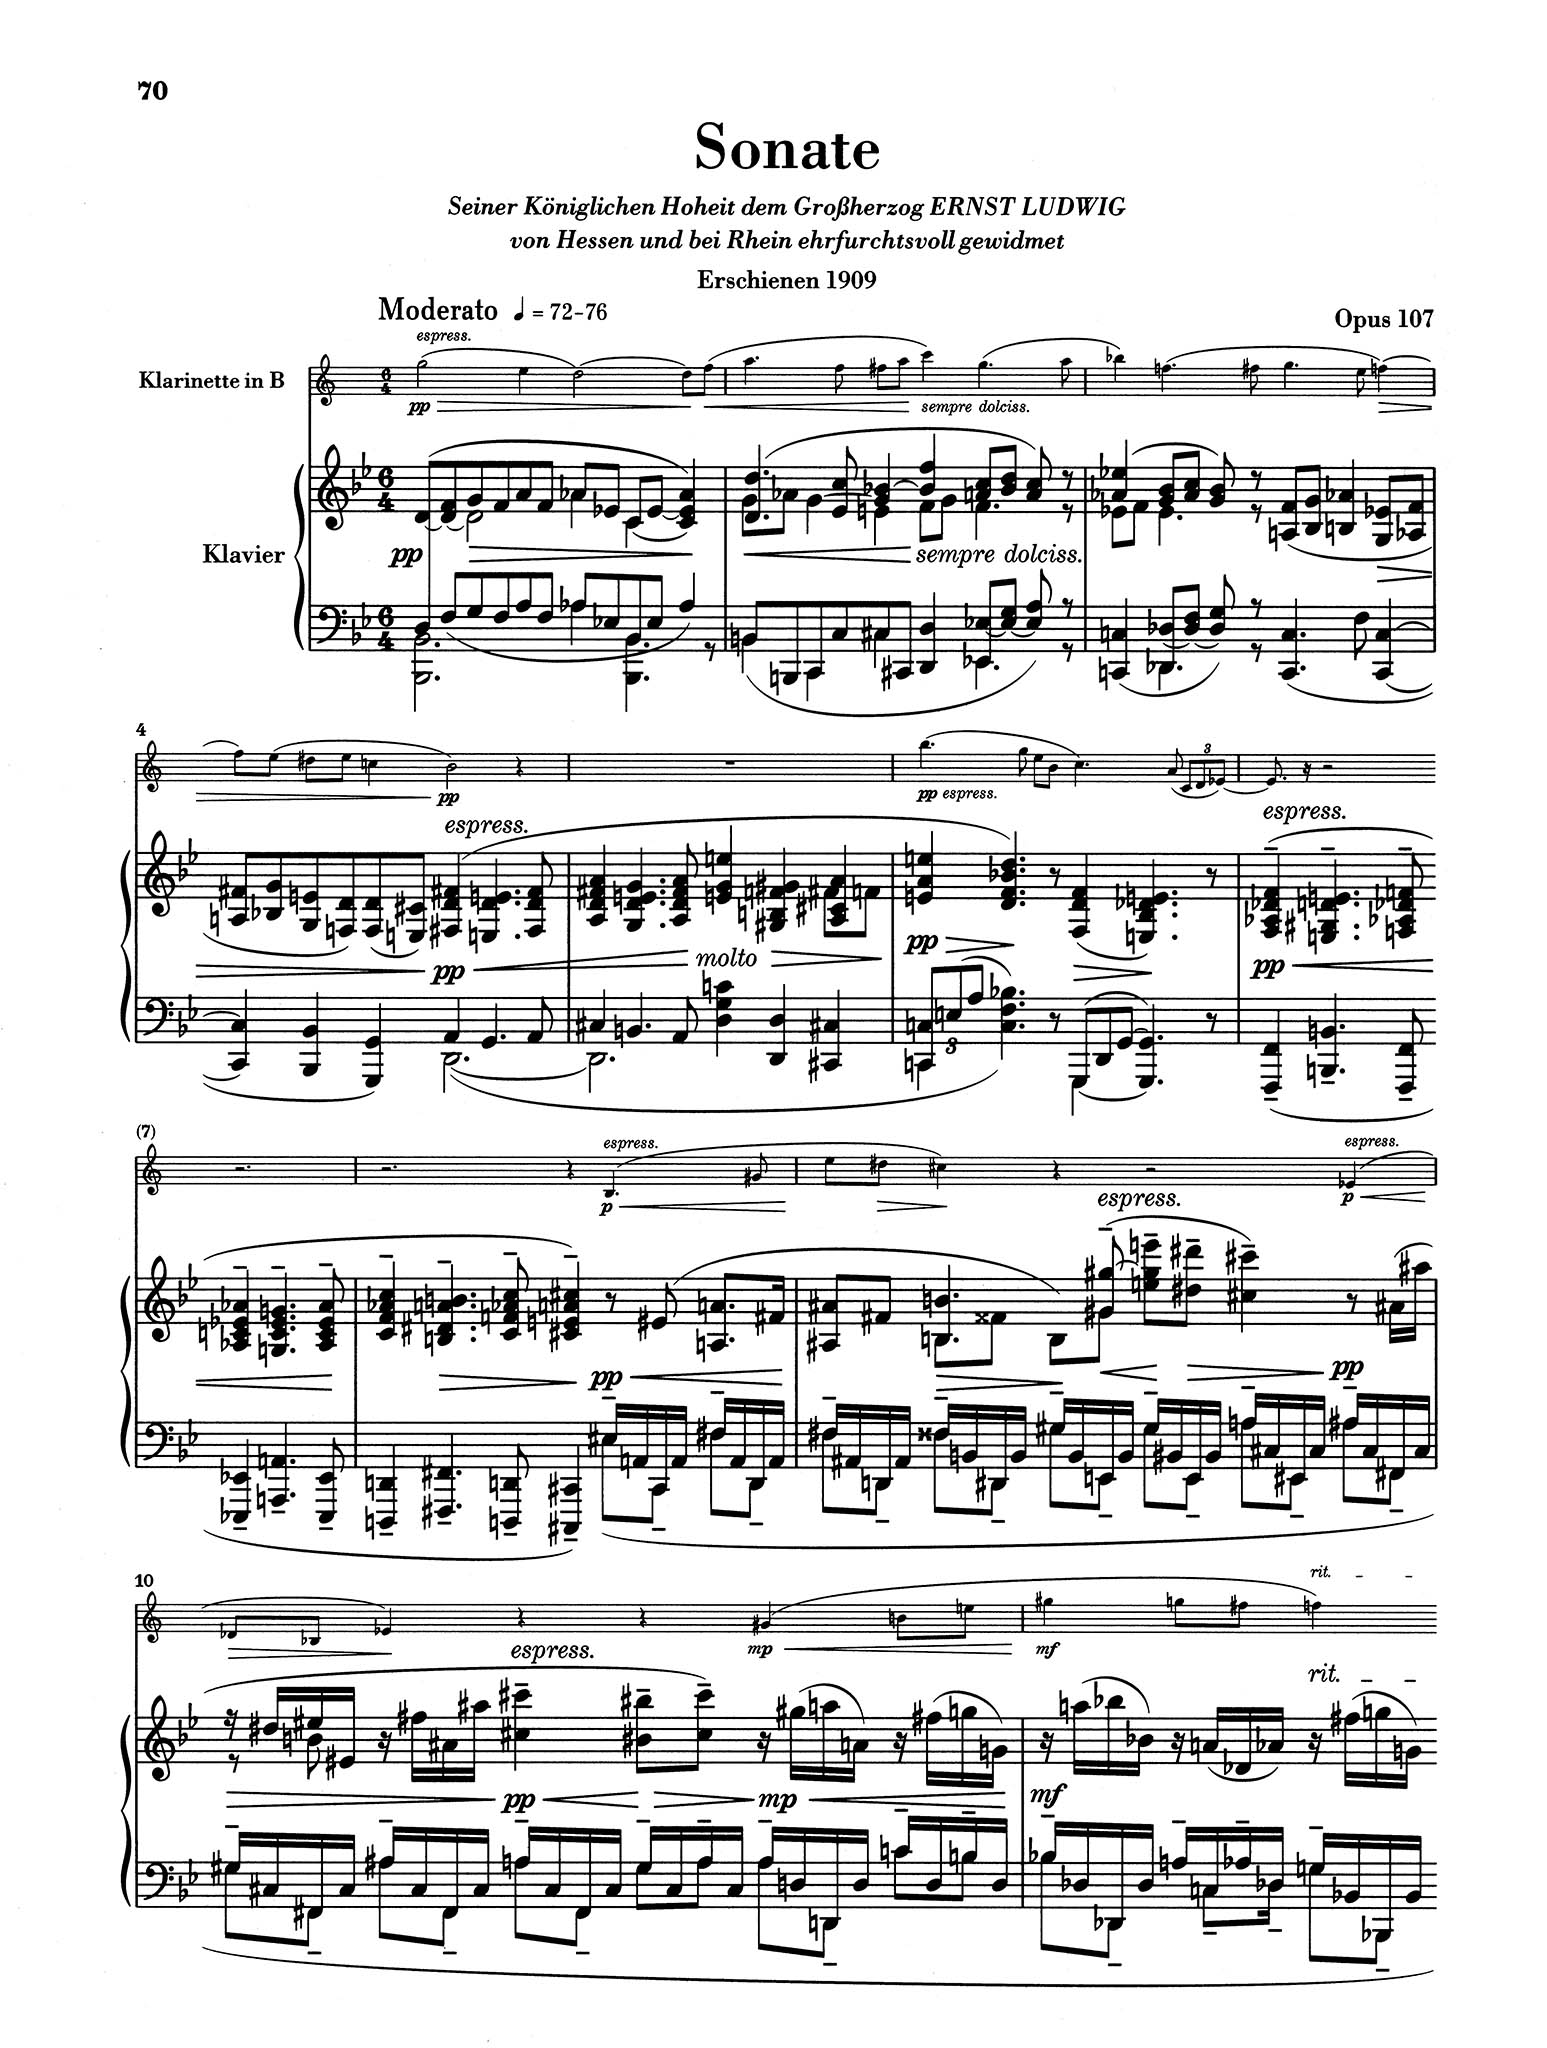 Sonata in B-flat Major, Op. 107 - Movement 1